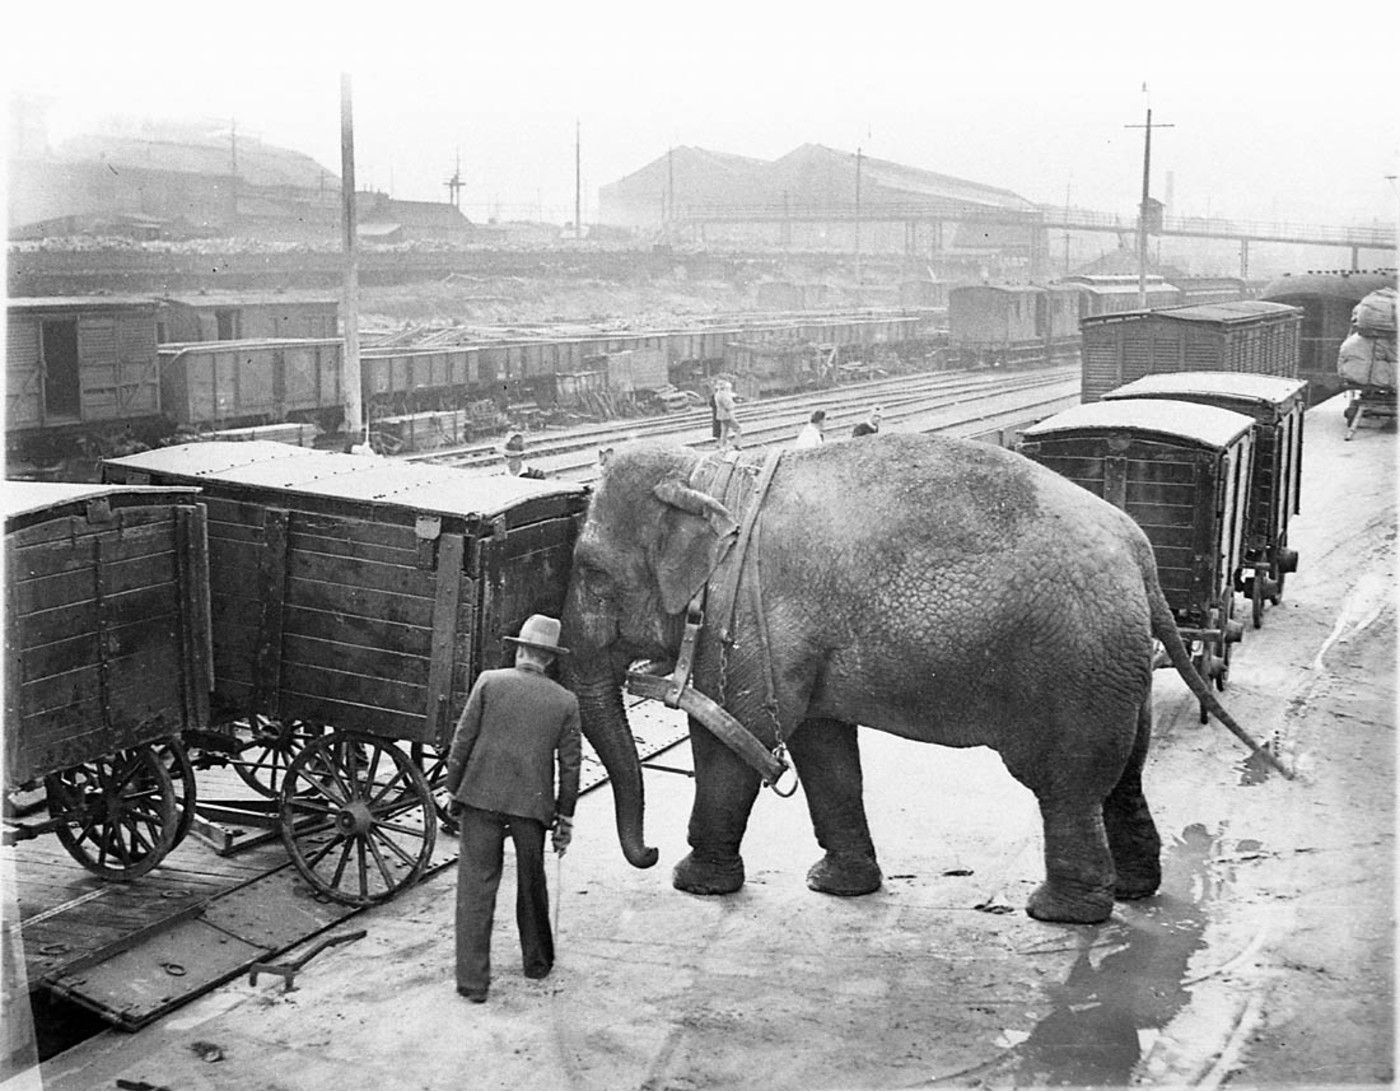 Alice the elephant loading the Wirth's Circus train